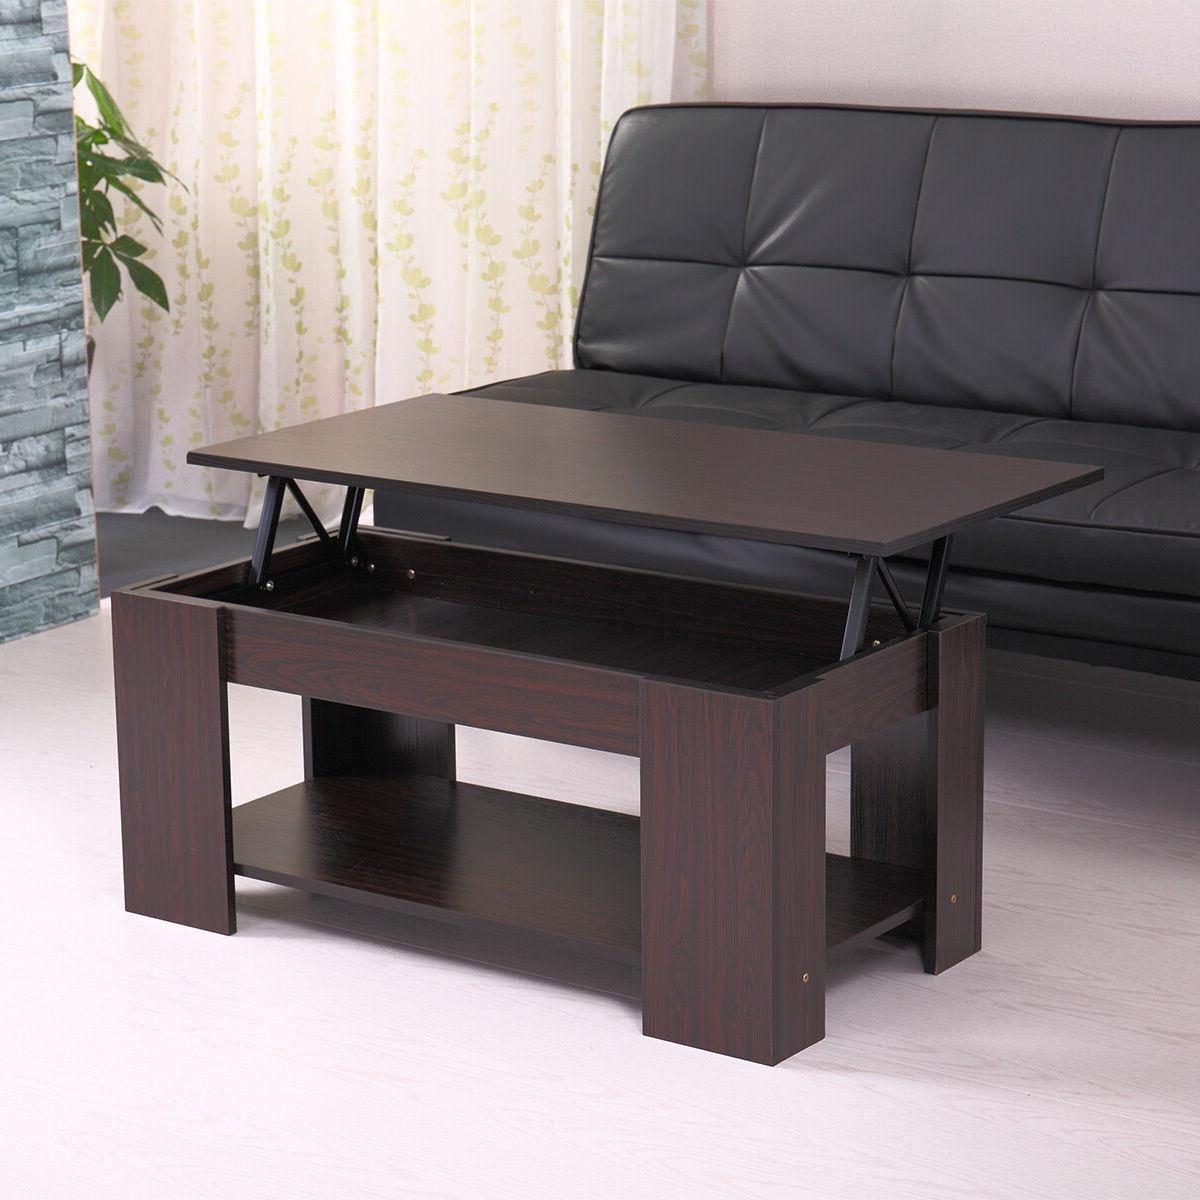 Modern Wood Coffee Table W/ Space Walnut